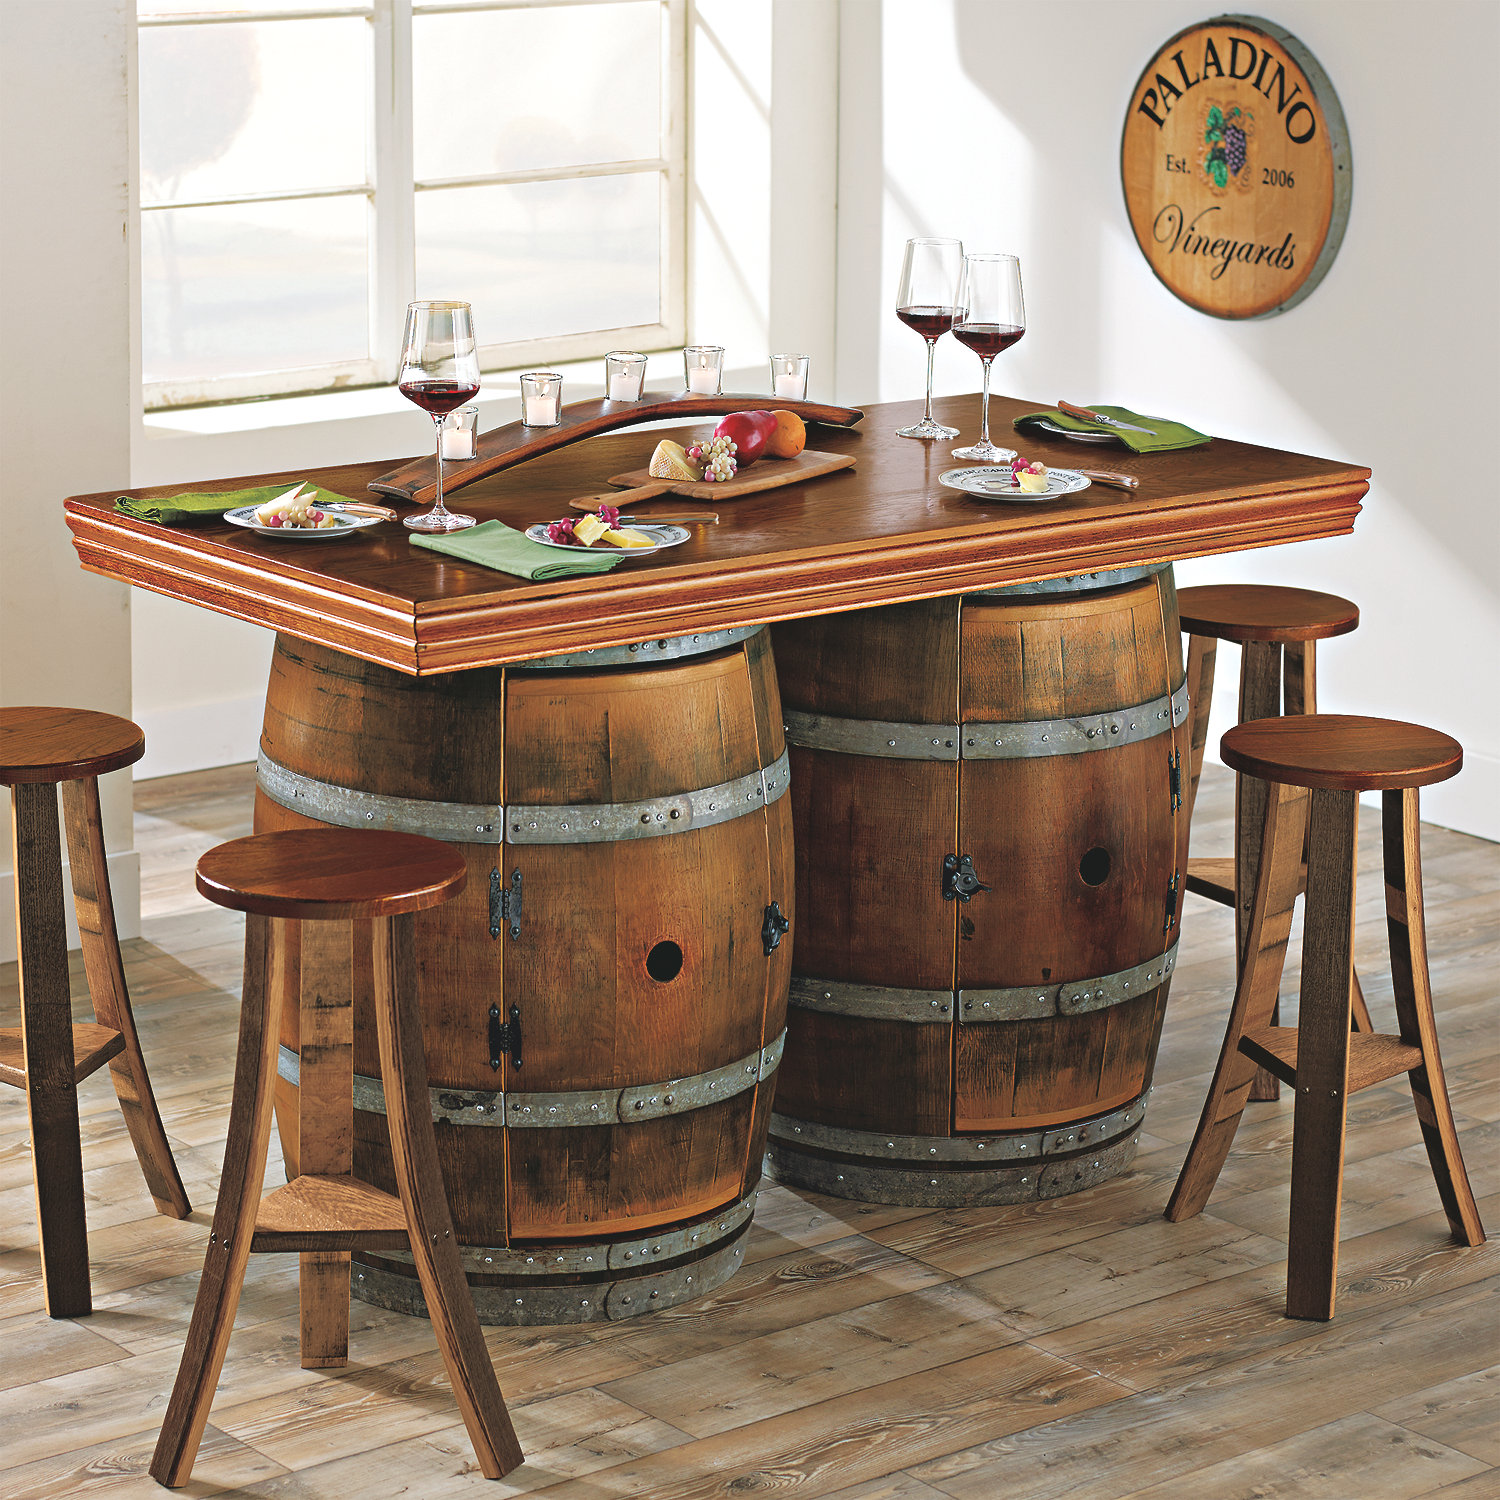 garden wine accent table round chairs made from barrels where can old ideas with barrel and full size chest for bedroom hallway runners raton furniture device charging end white